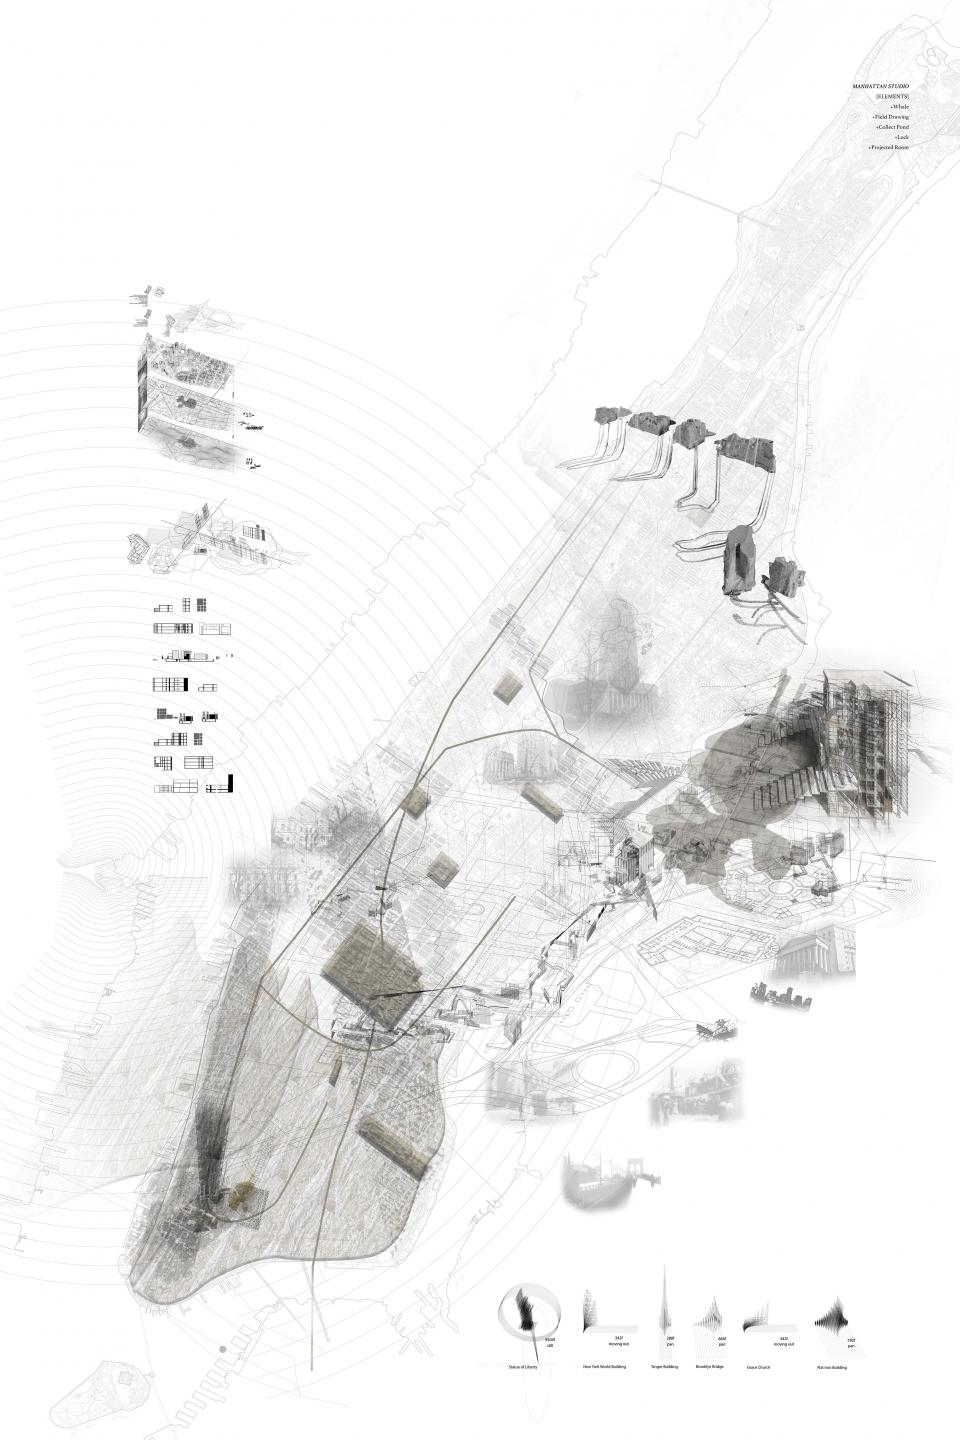 Hanyue LU_Architecture - MArch_2020_MANHATTAN-Landscape of engagement between the citizen of the city and law of city_2.jpg